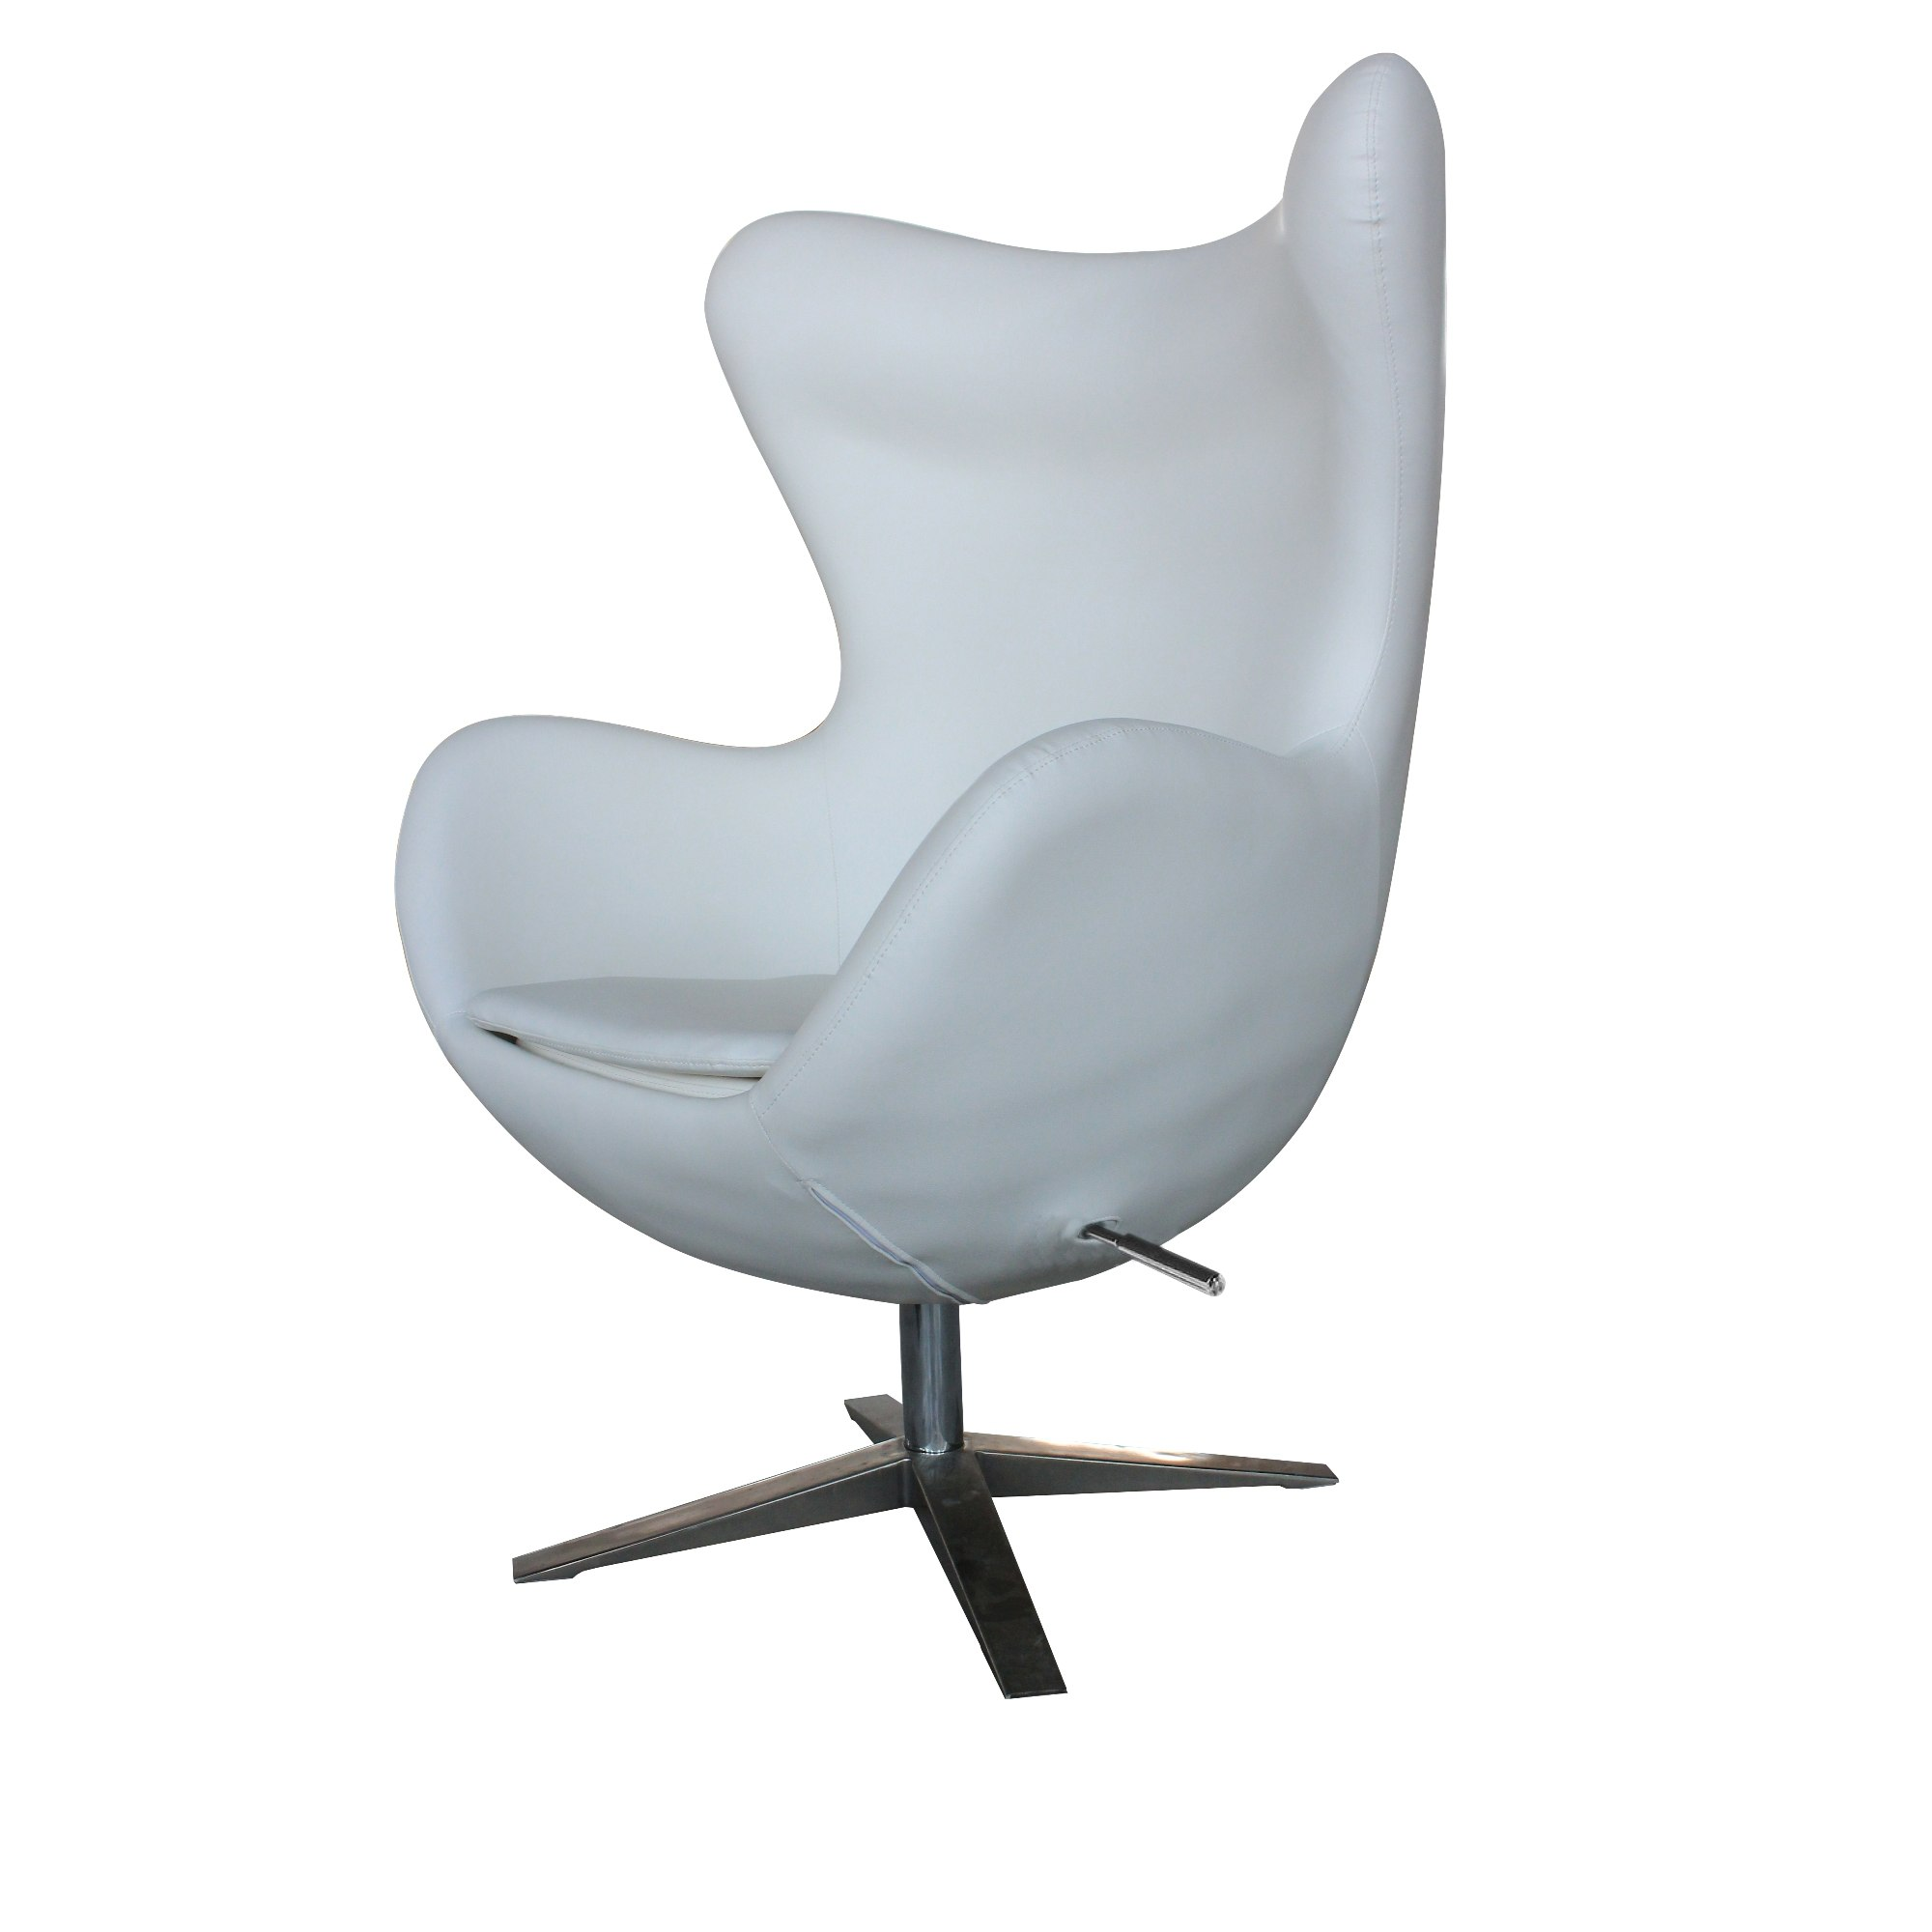 Cool Egg Chairs Arne Jacobsen Egg Chair Replica Sale The Best Christmas